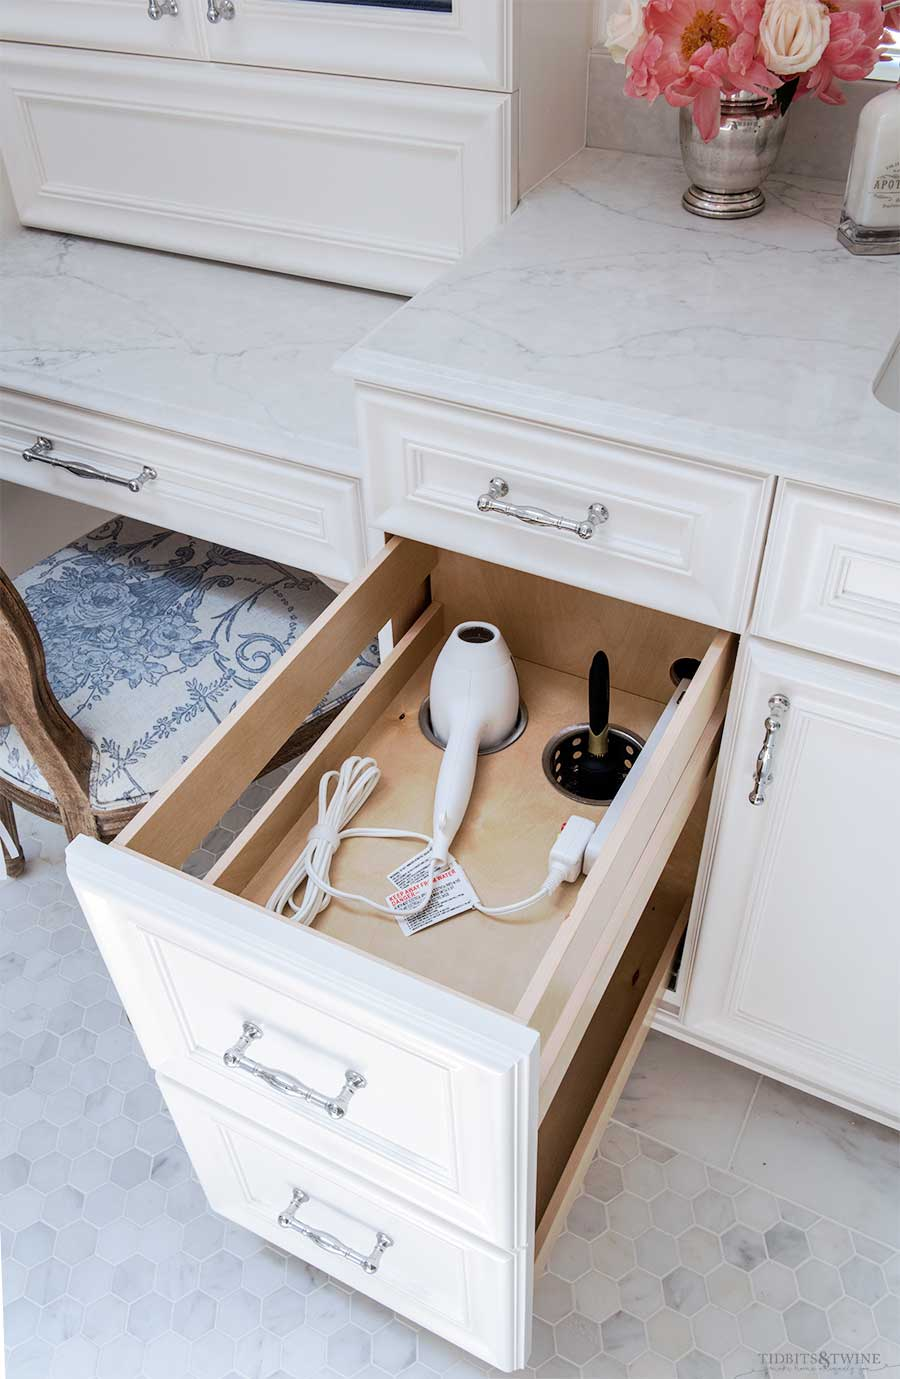 Bathroom vanity drawer with electrical box and hair dryer holder built in holster style